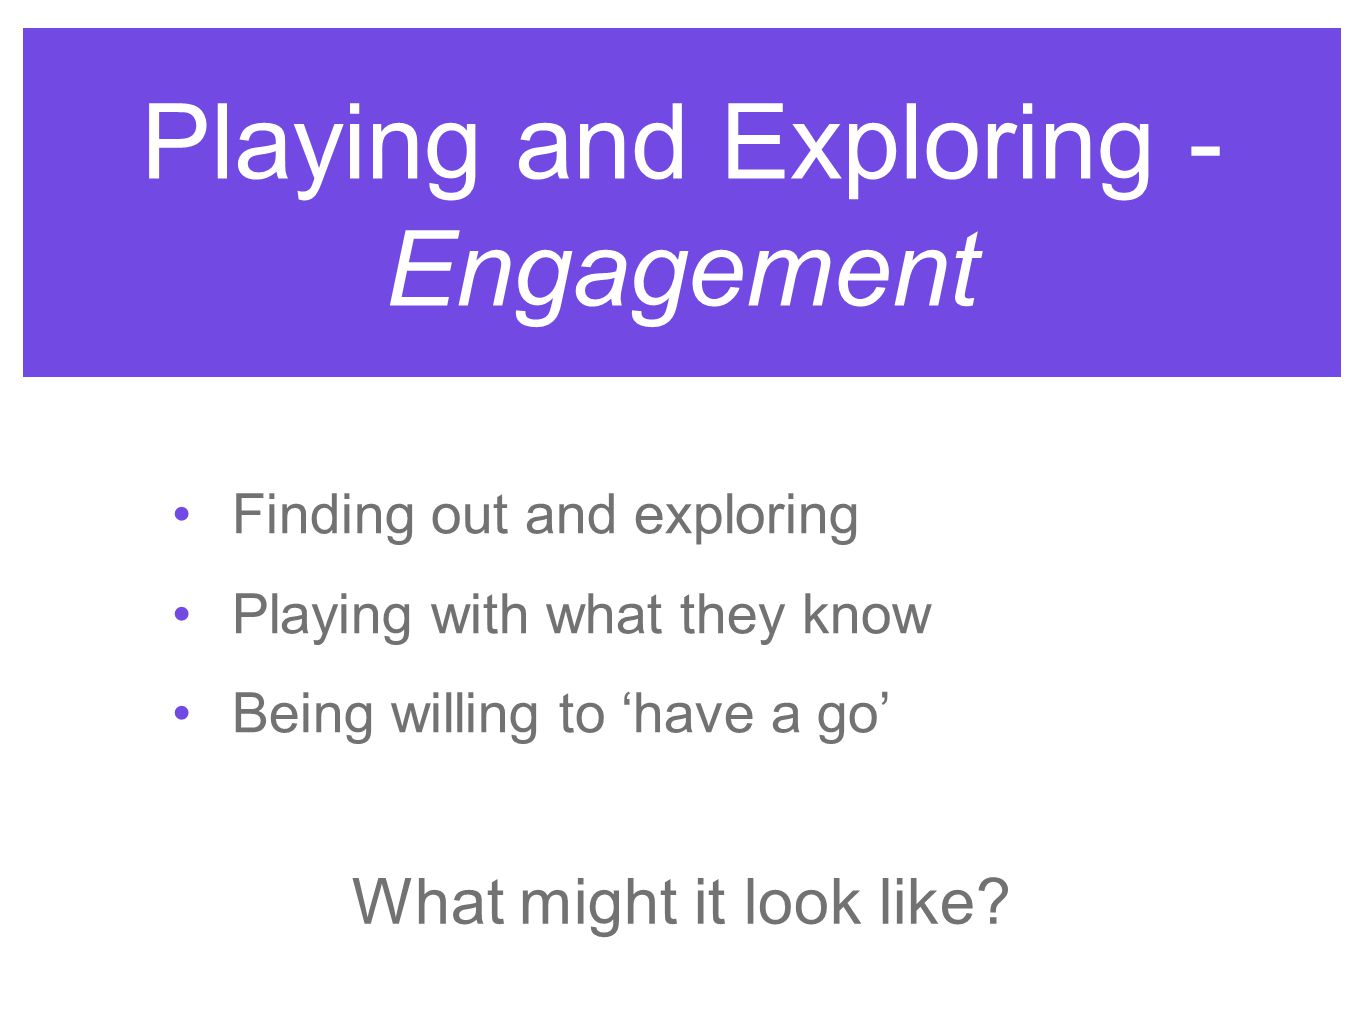 Playing and Exploring - Engagement